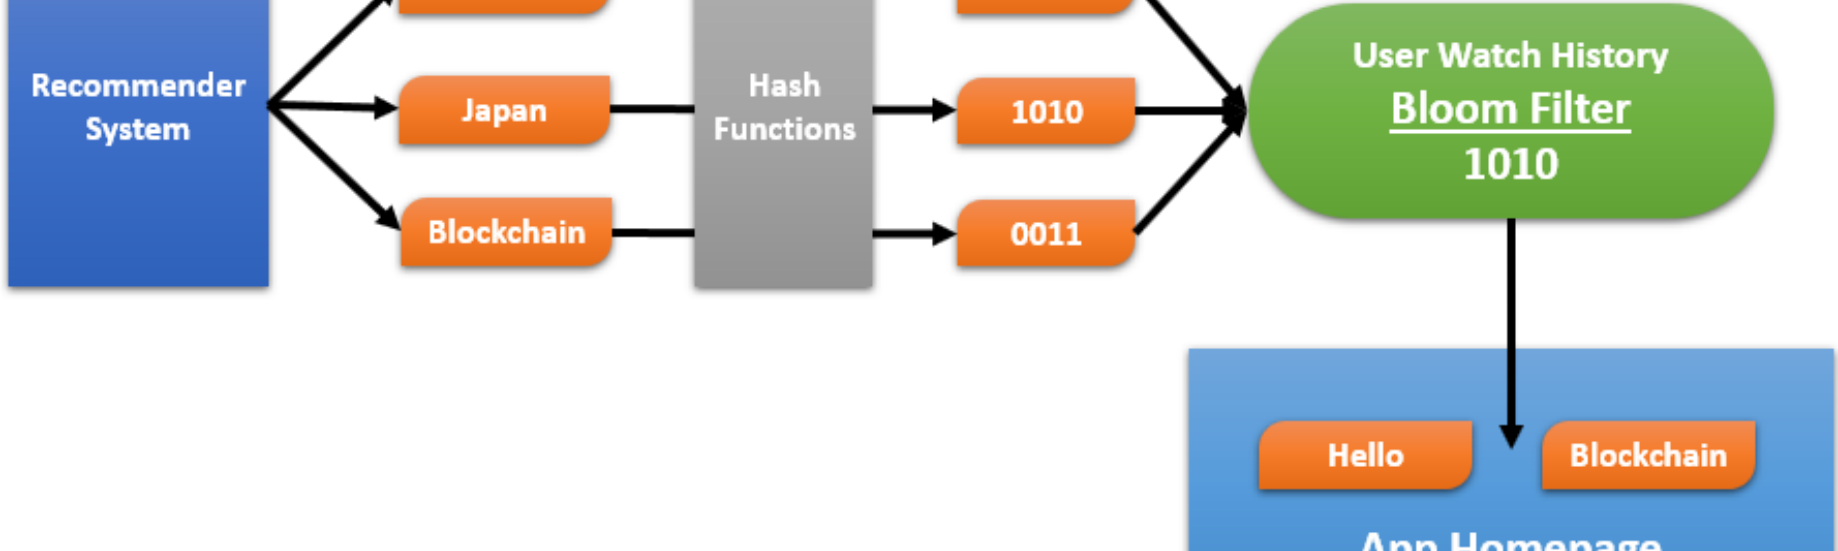 Big Data with Sketchy Structures, Part 2 — HyperLogLog and Bloom Filters